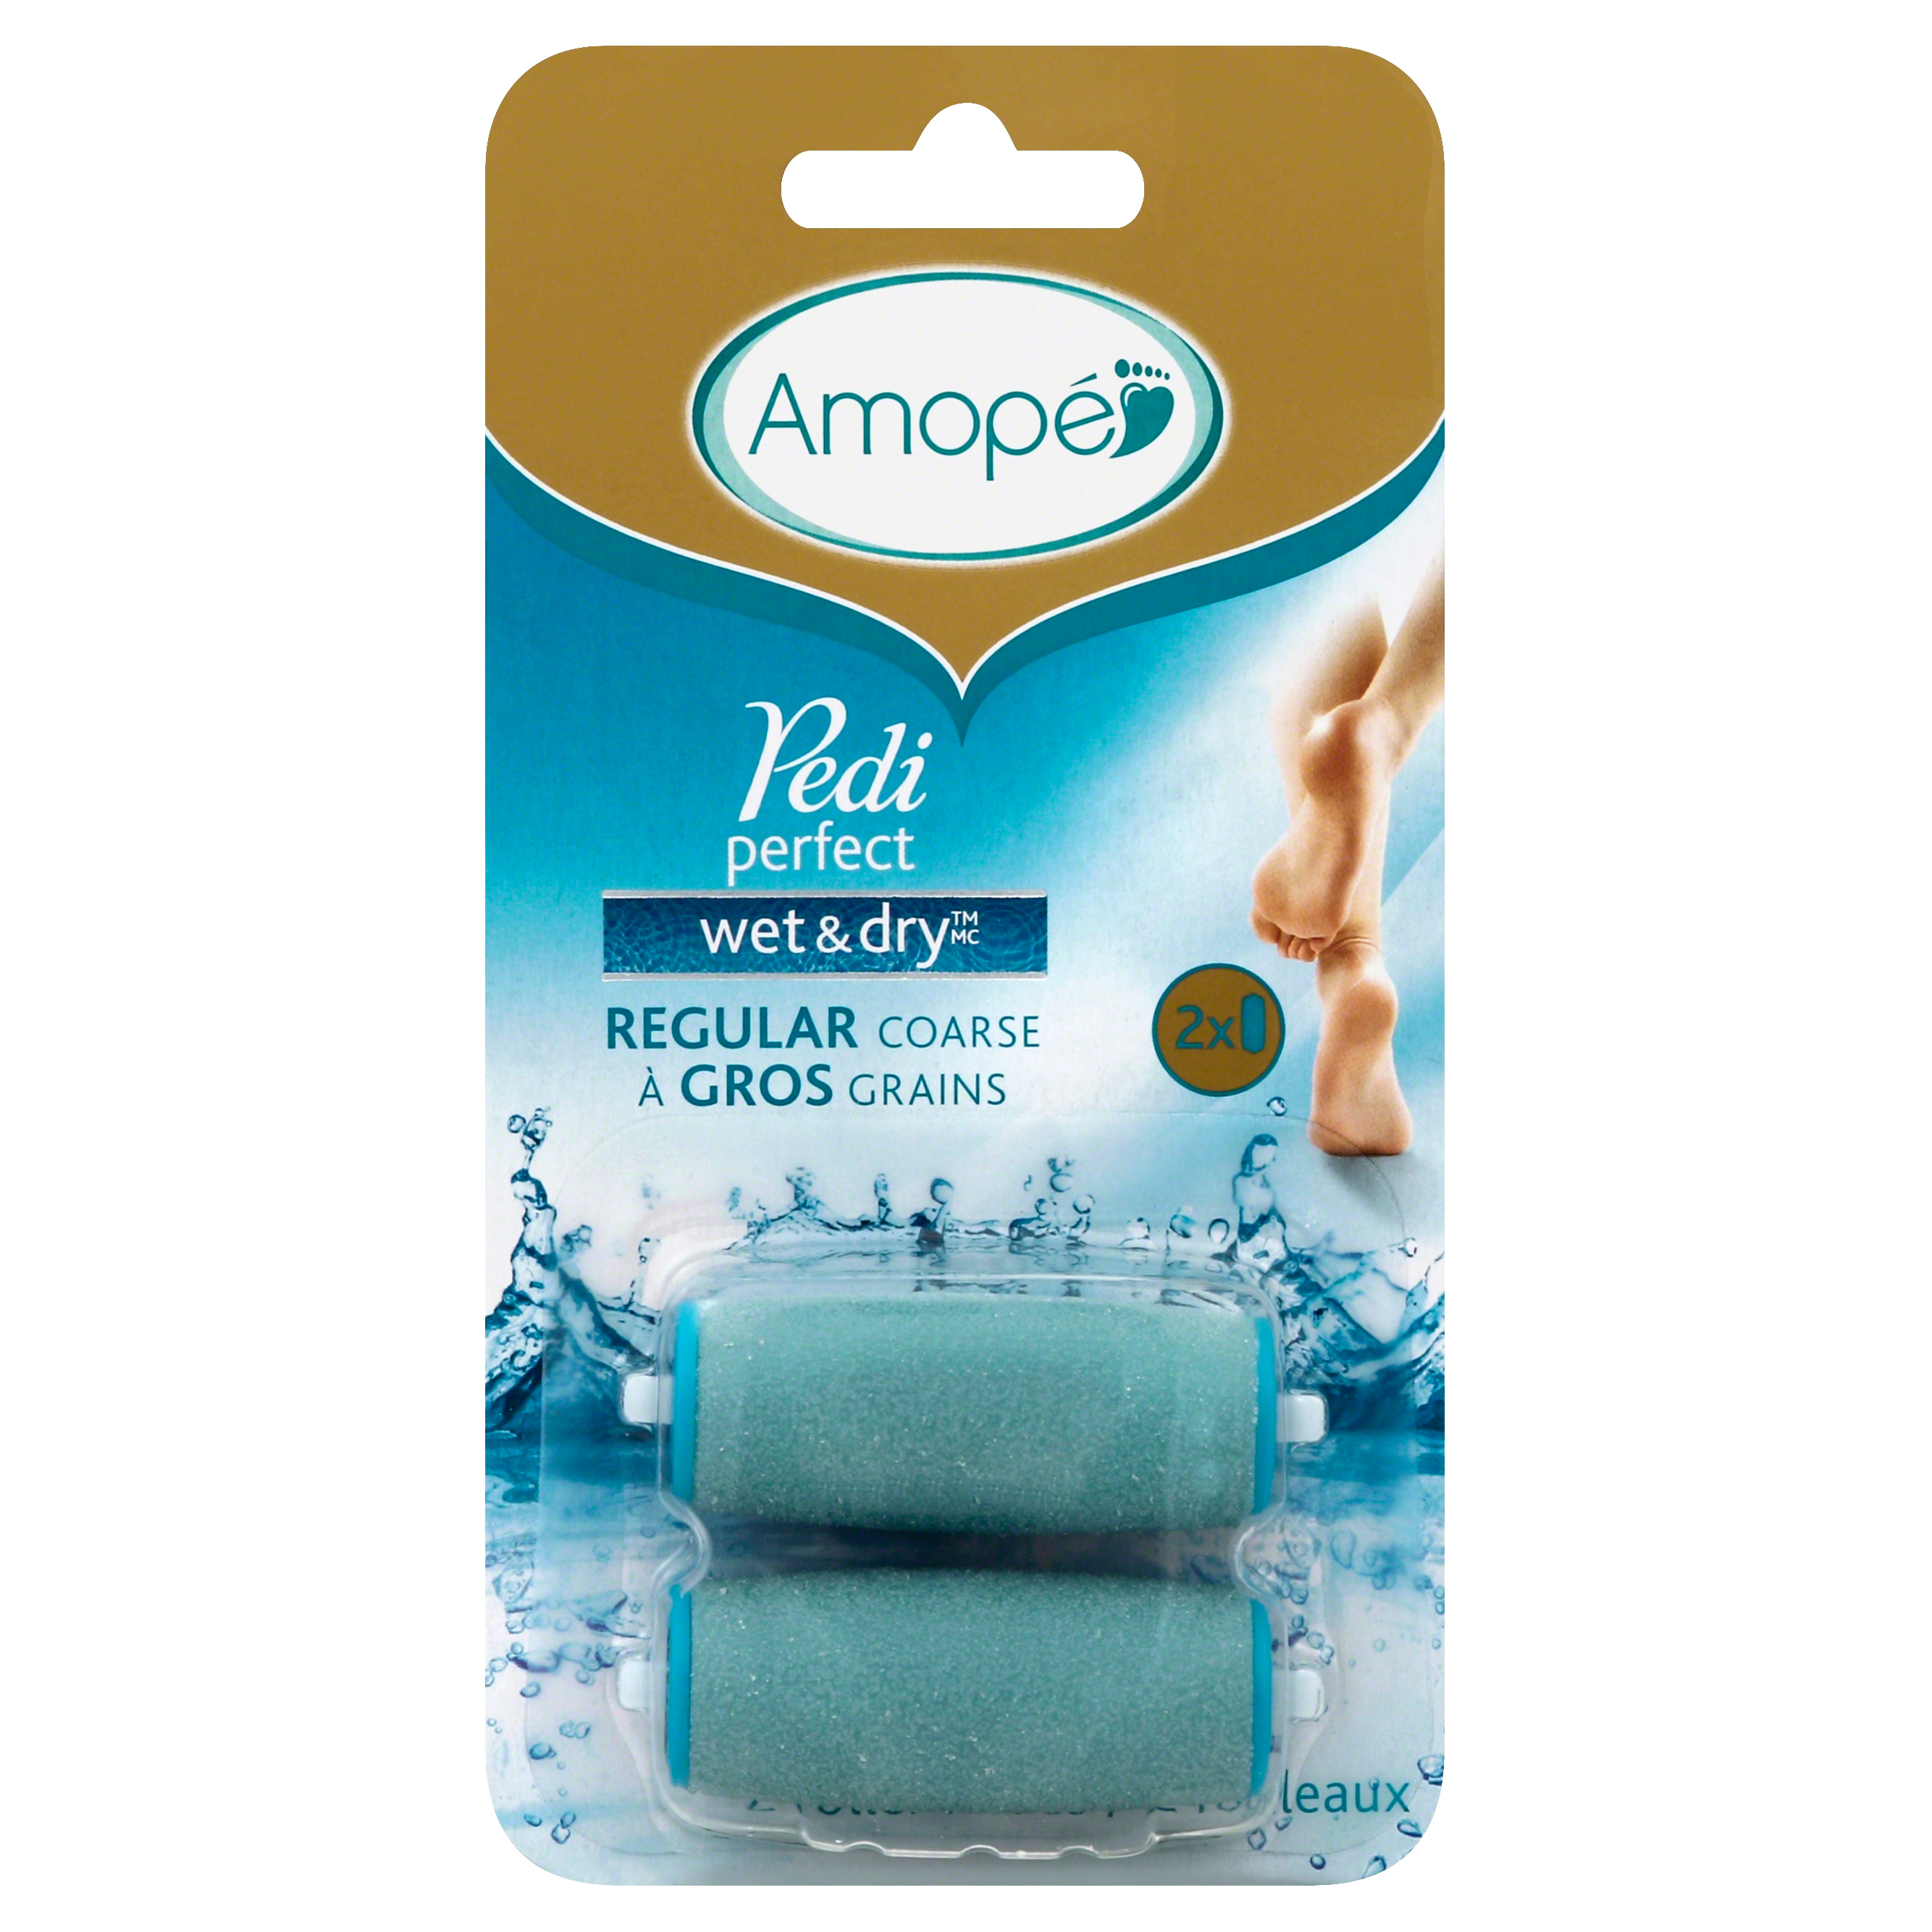 Amope Pedi Perfect Wet & Dry��� Regular Coarse Refills, 2 ct